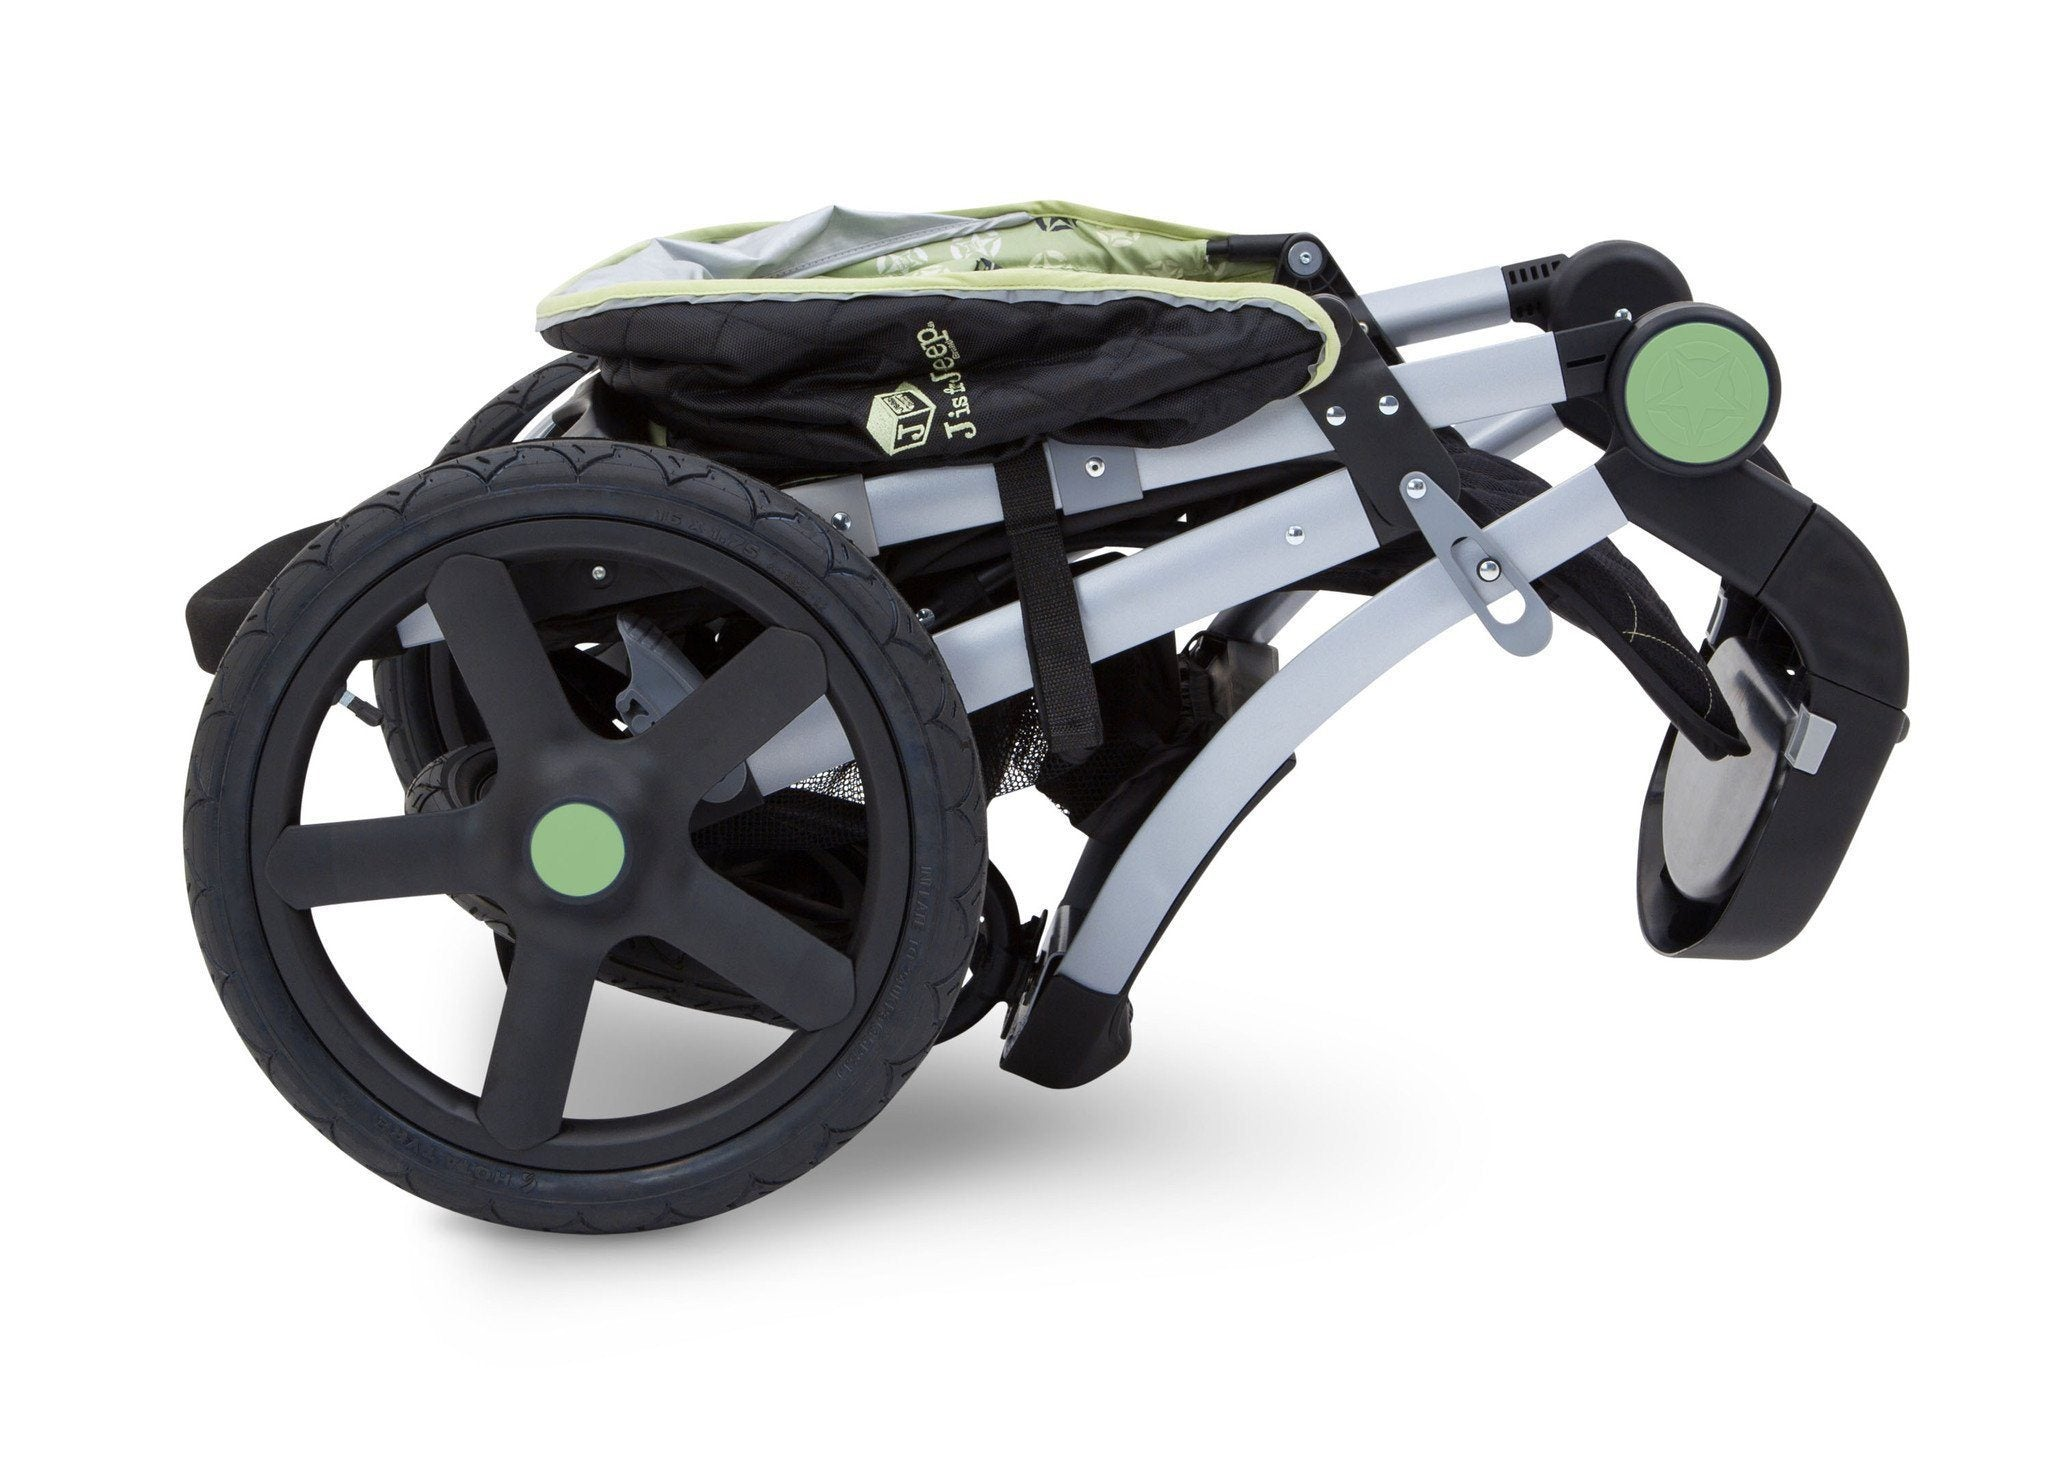 Jeep Adventure All Terrain Jogger Stroller by Delta Children, Destination (314), can be folded quickly and compactly